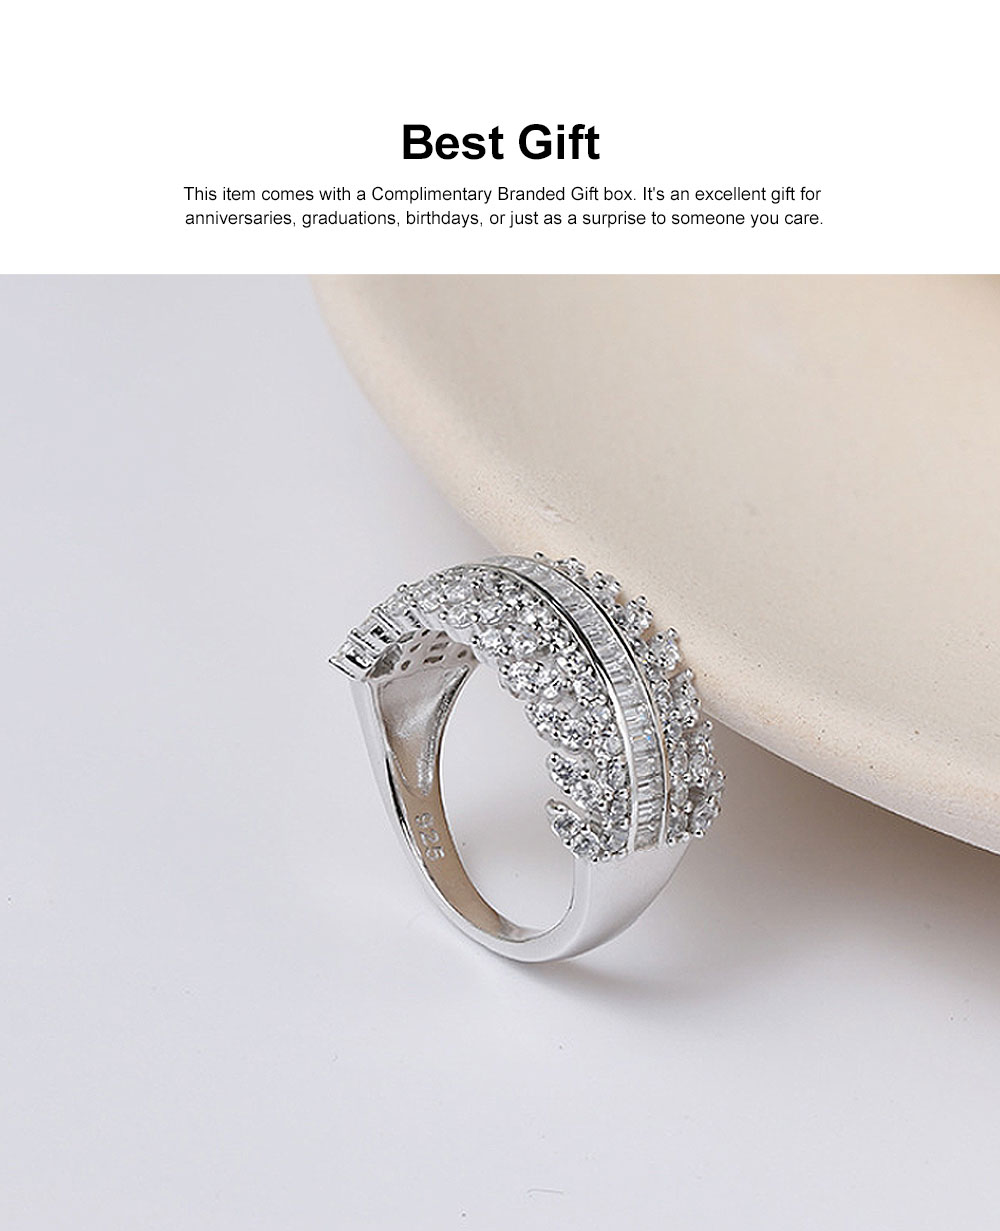 Women's Full Diamond Sterling Silver Jewelry Ring, 925 Sterling Silver Round Cut Crystals Rings for women 1